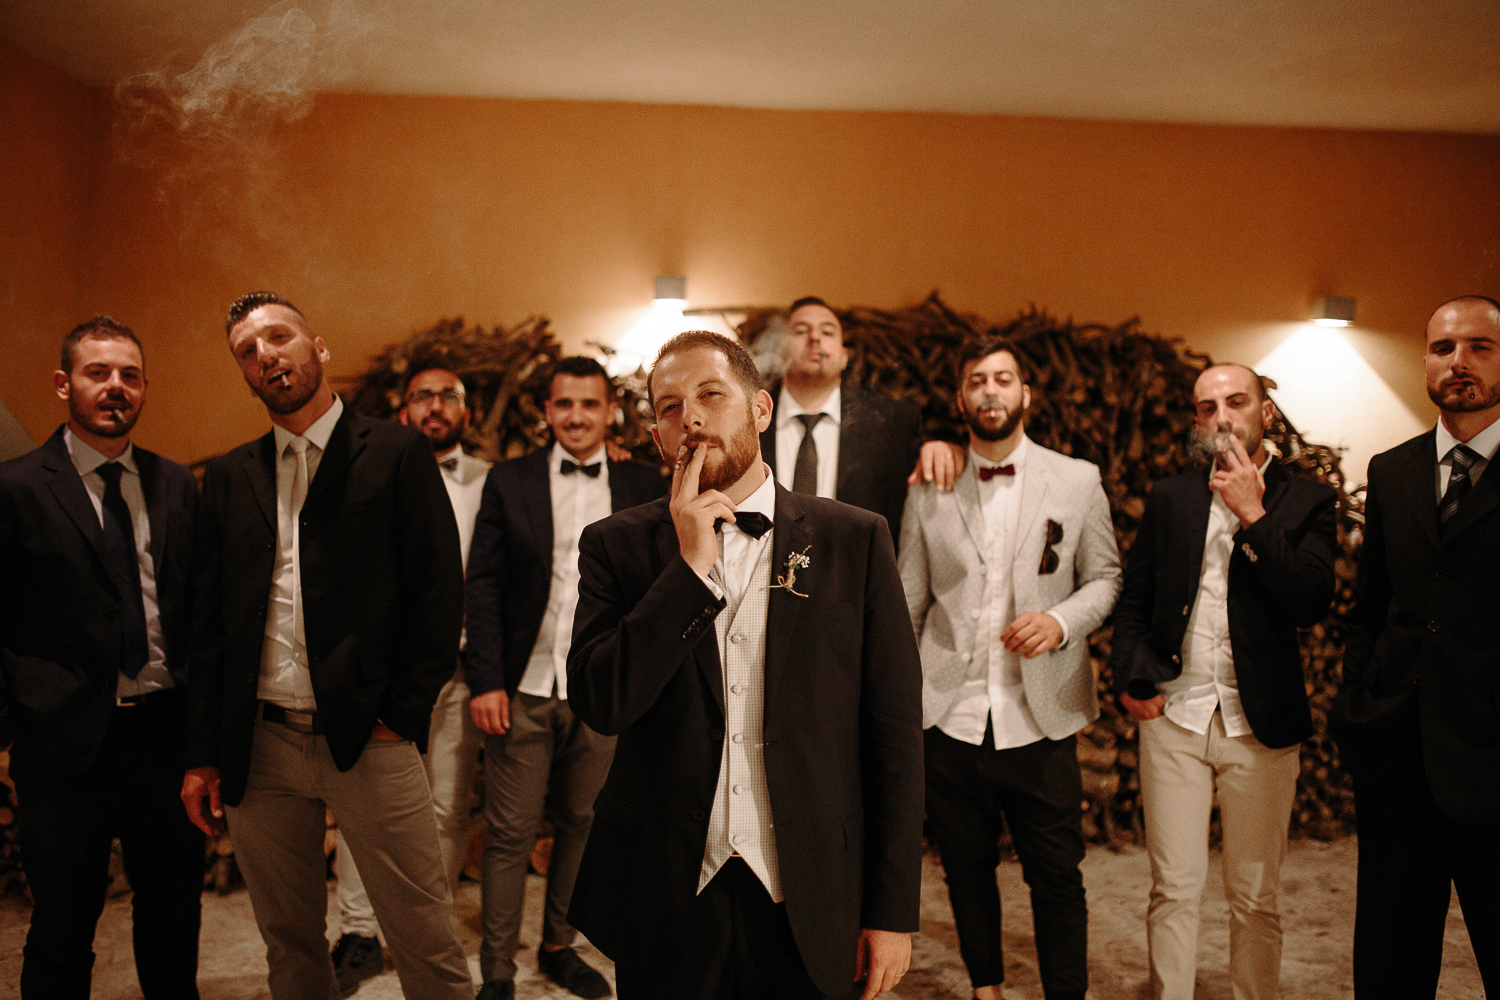 groom-and-friends-stop-motion-in-italy.jpg